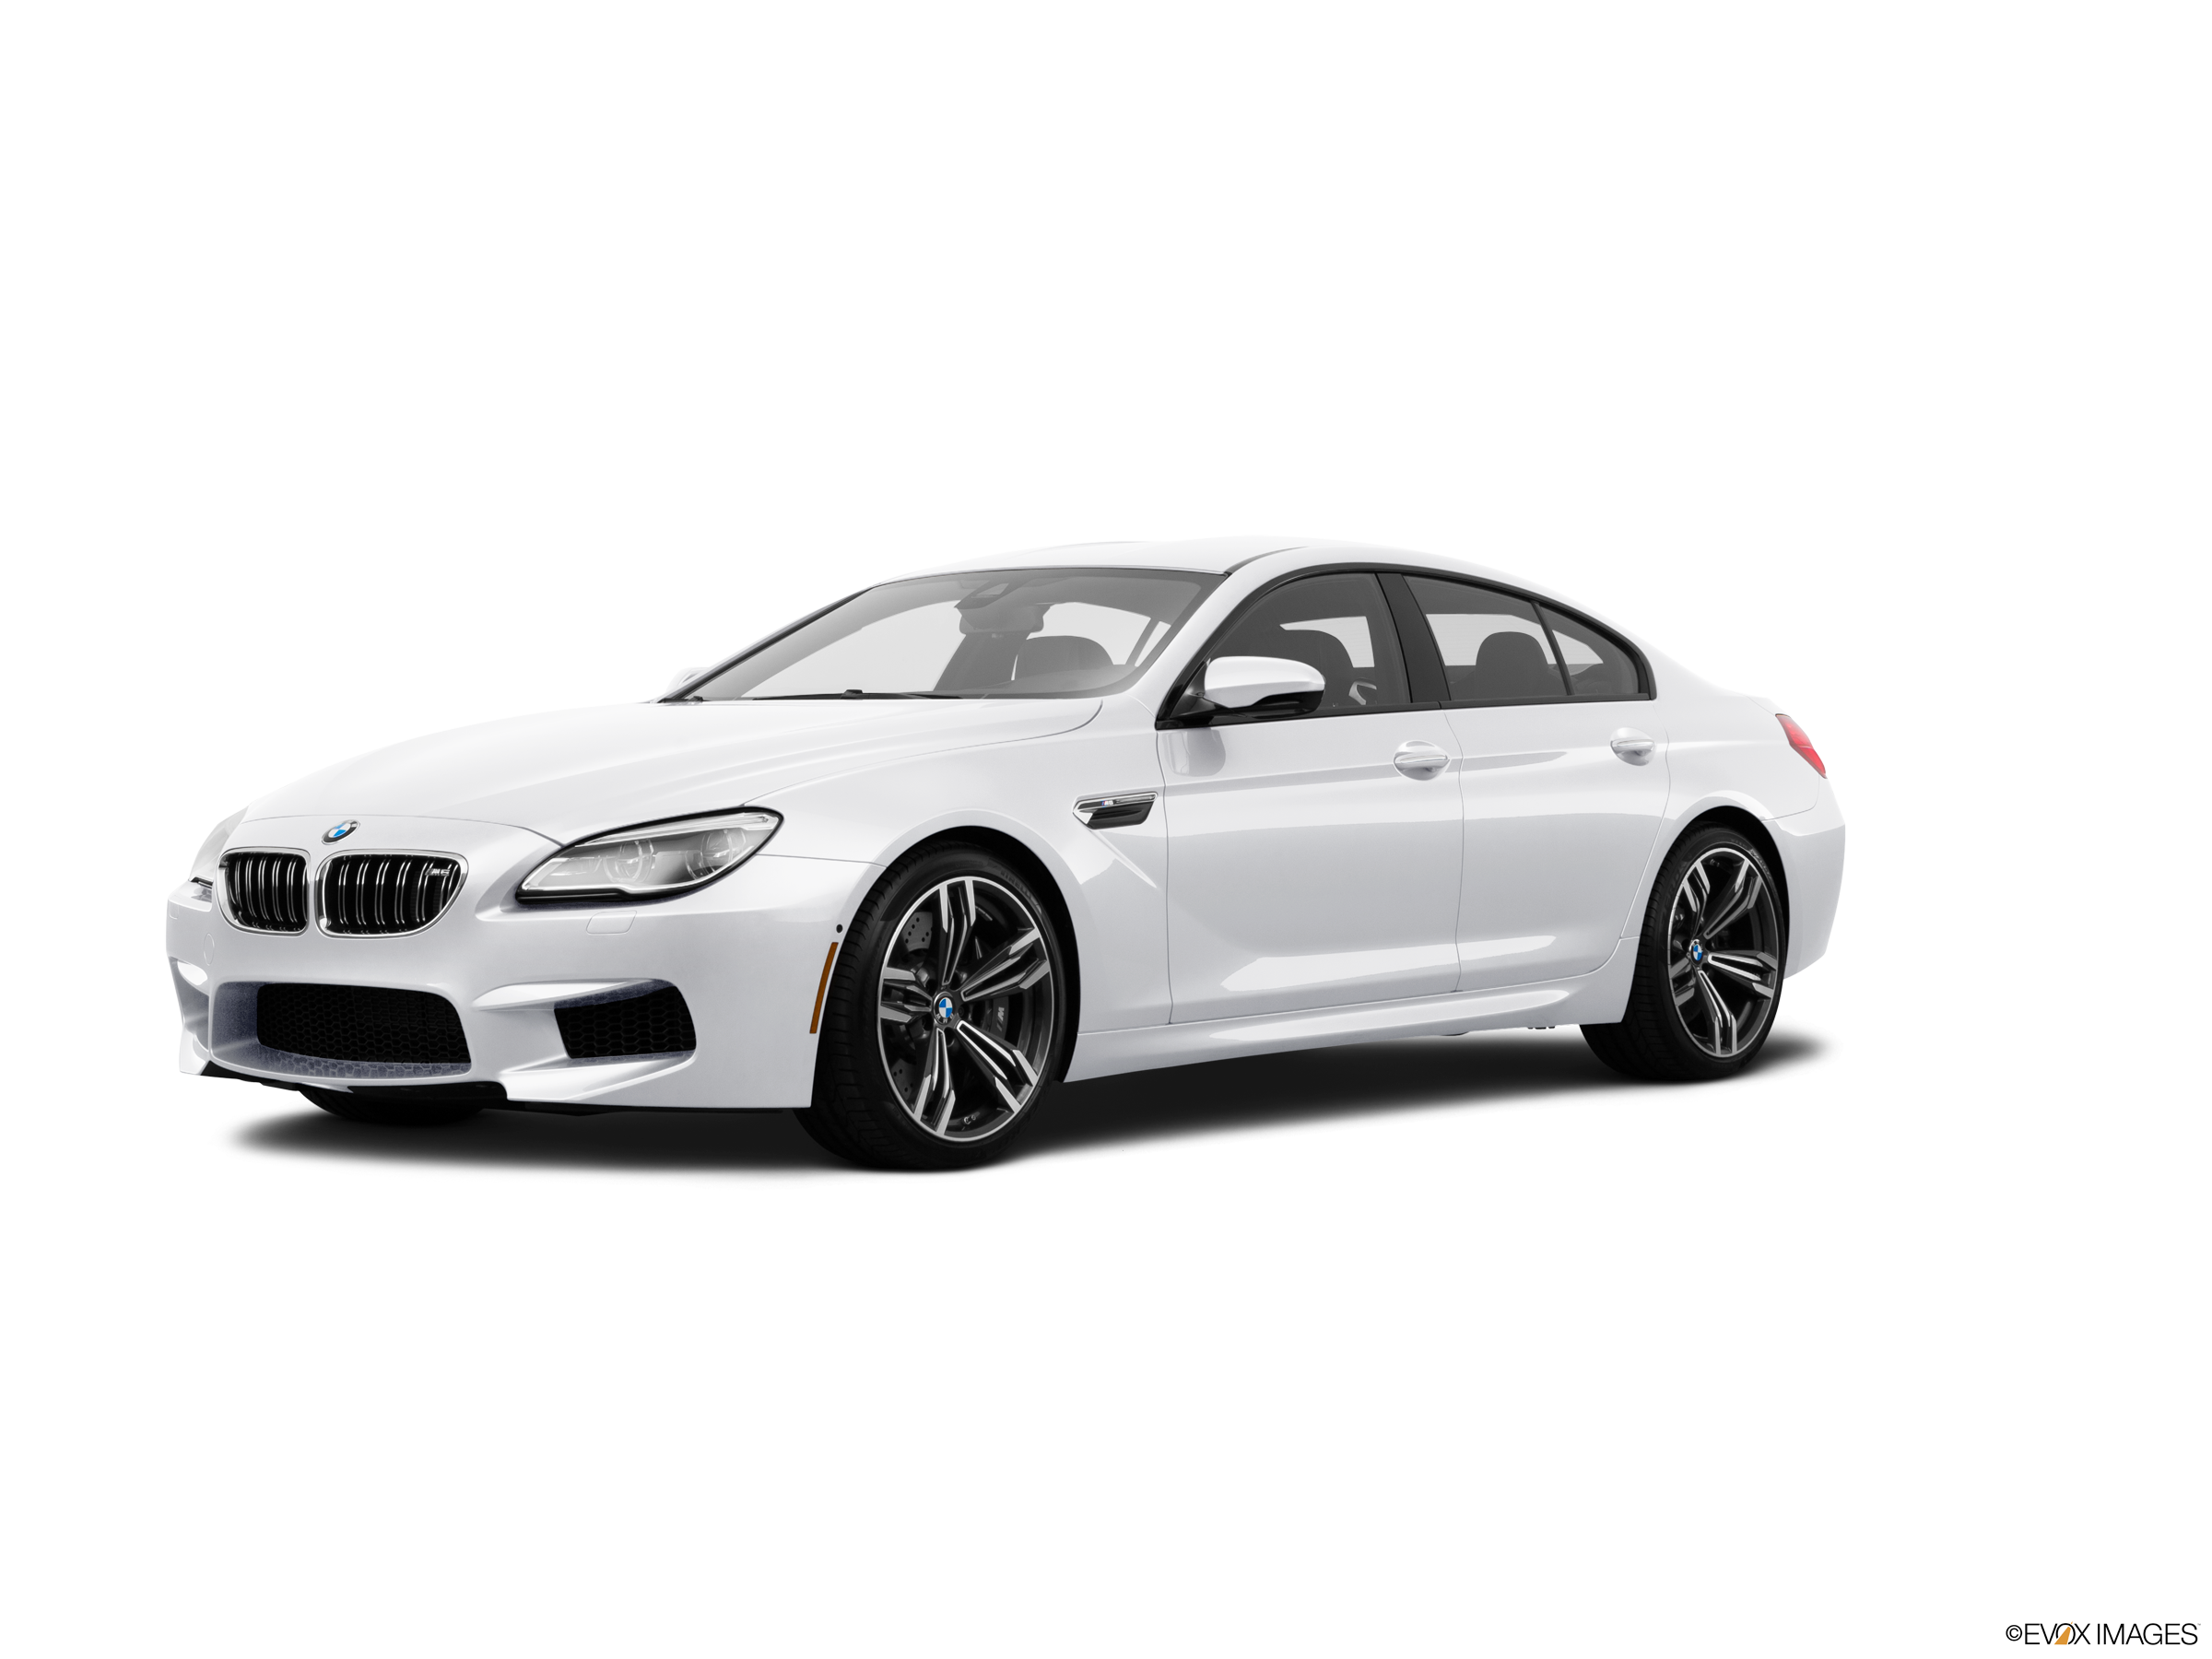 Top Consumer Rated Sedans of 2017 - 2017 BMW M6